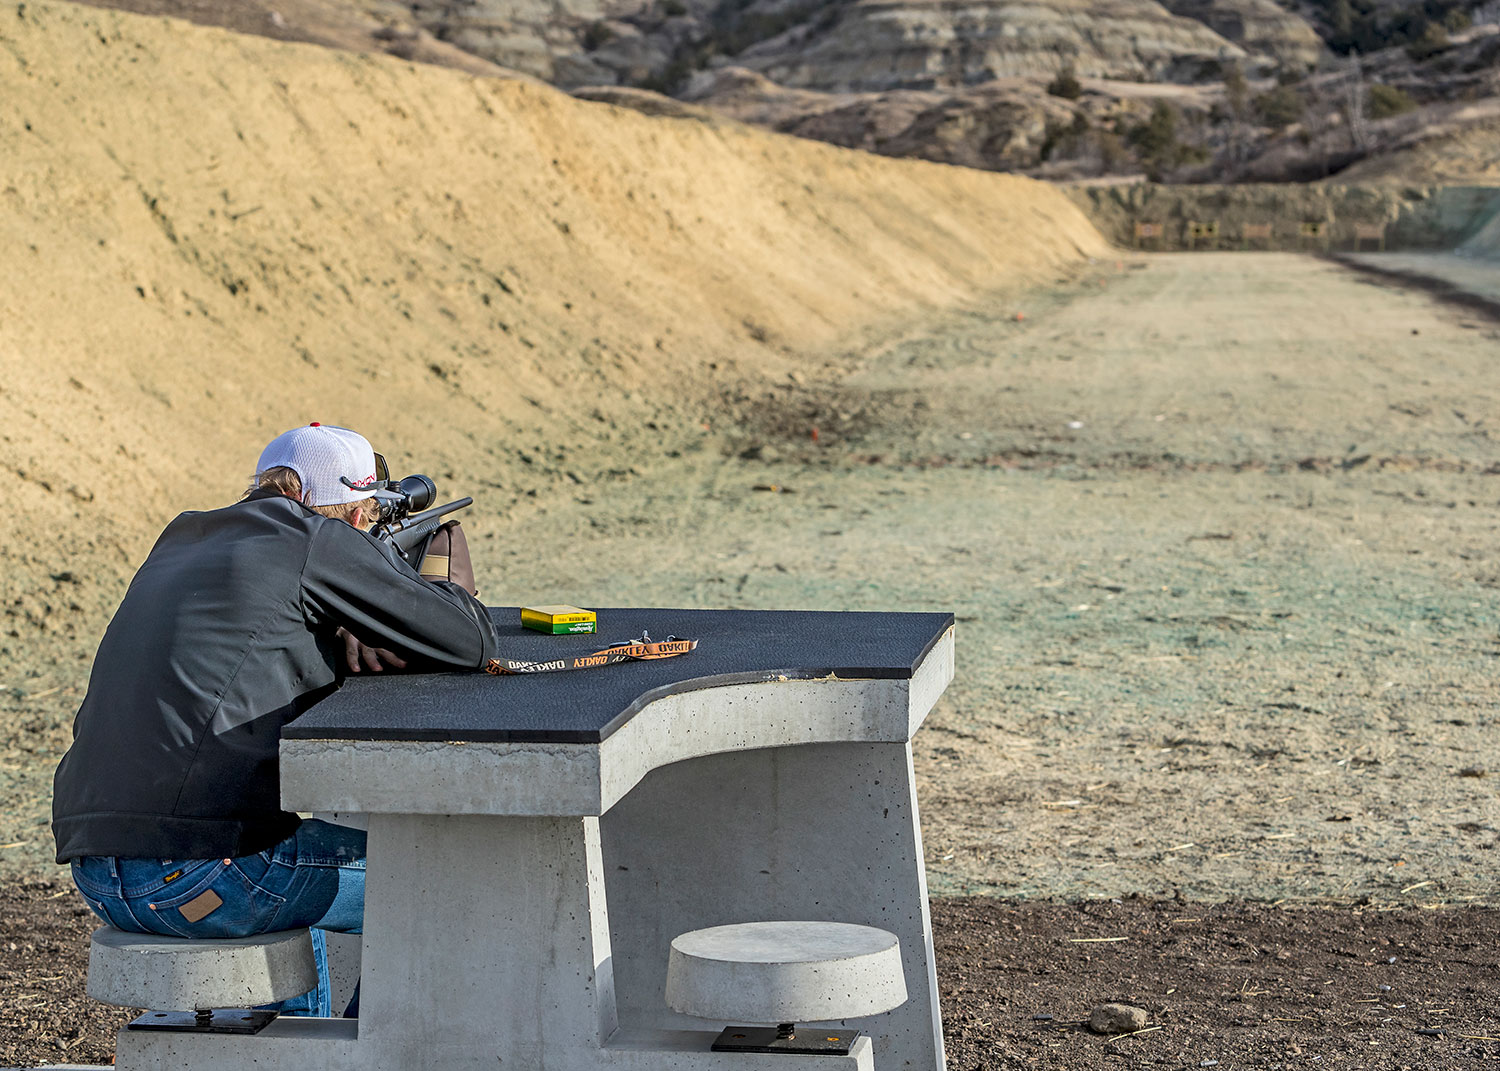 Person using shooting range